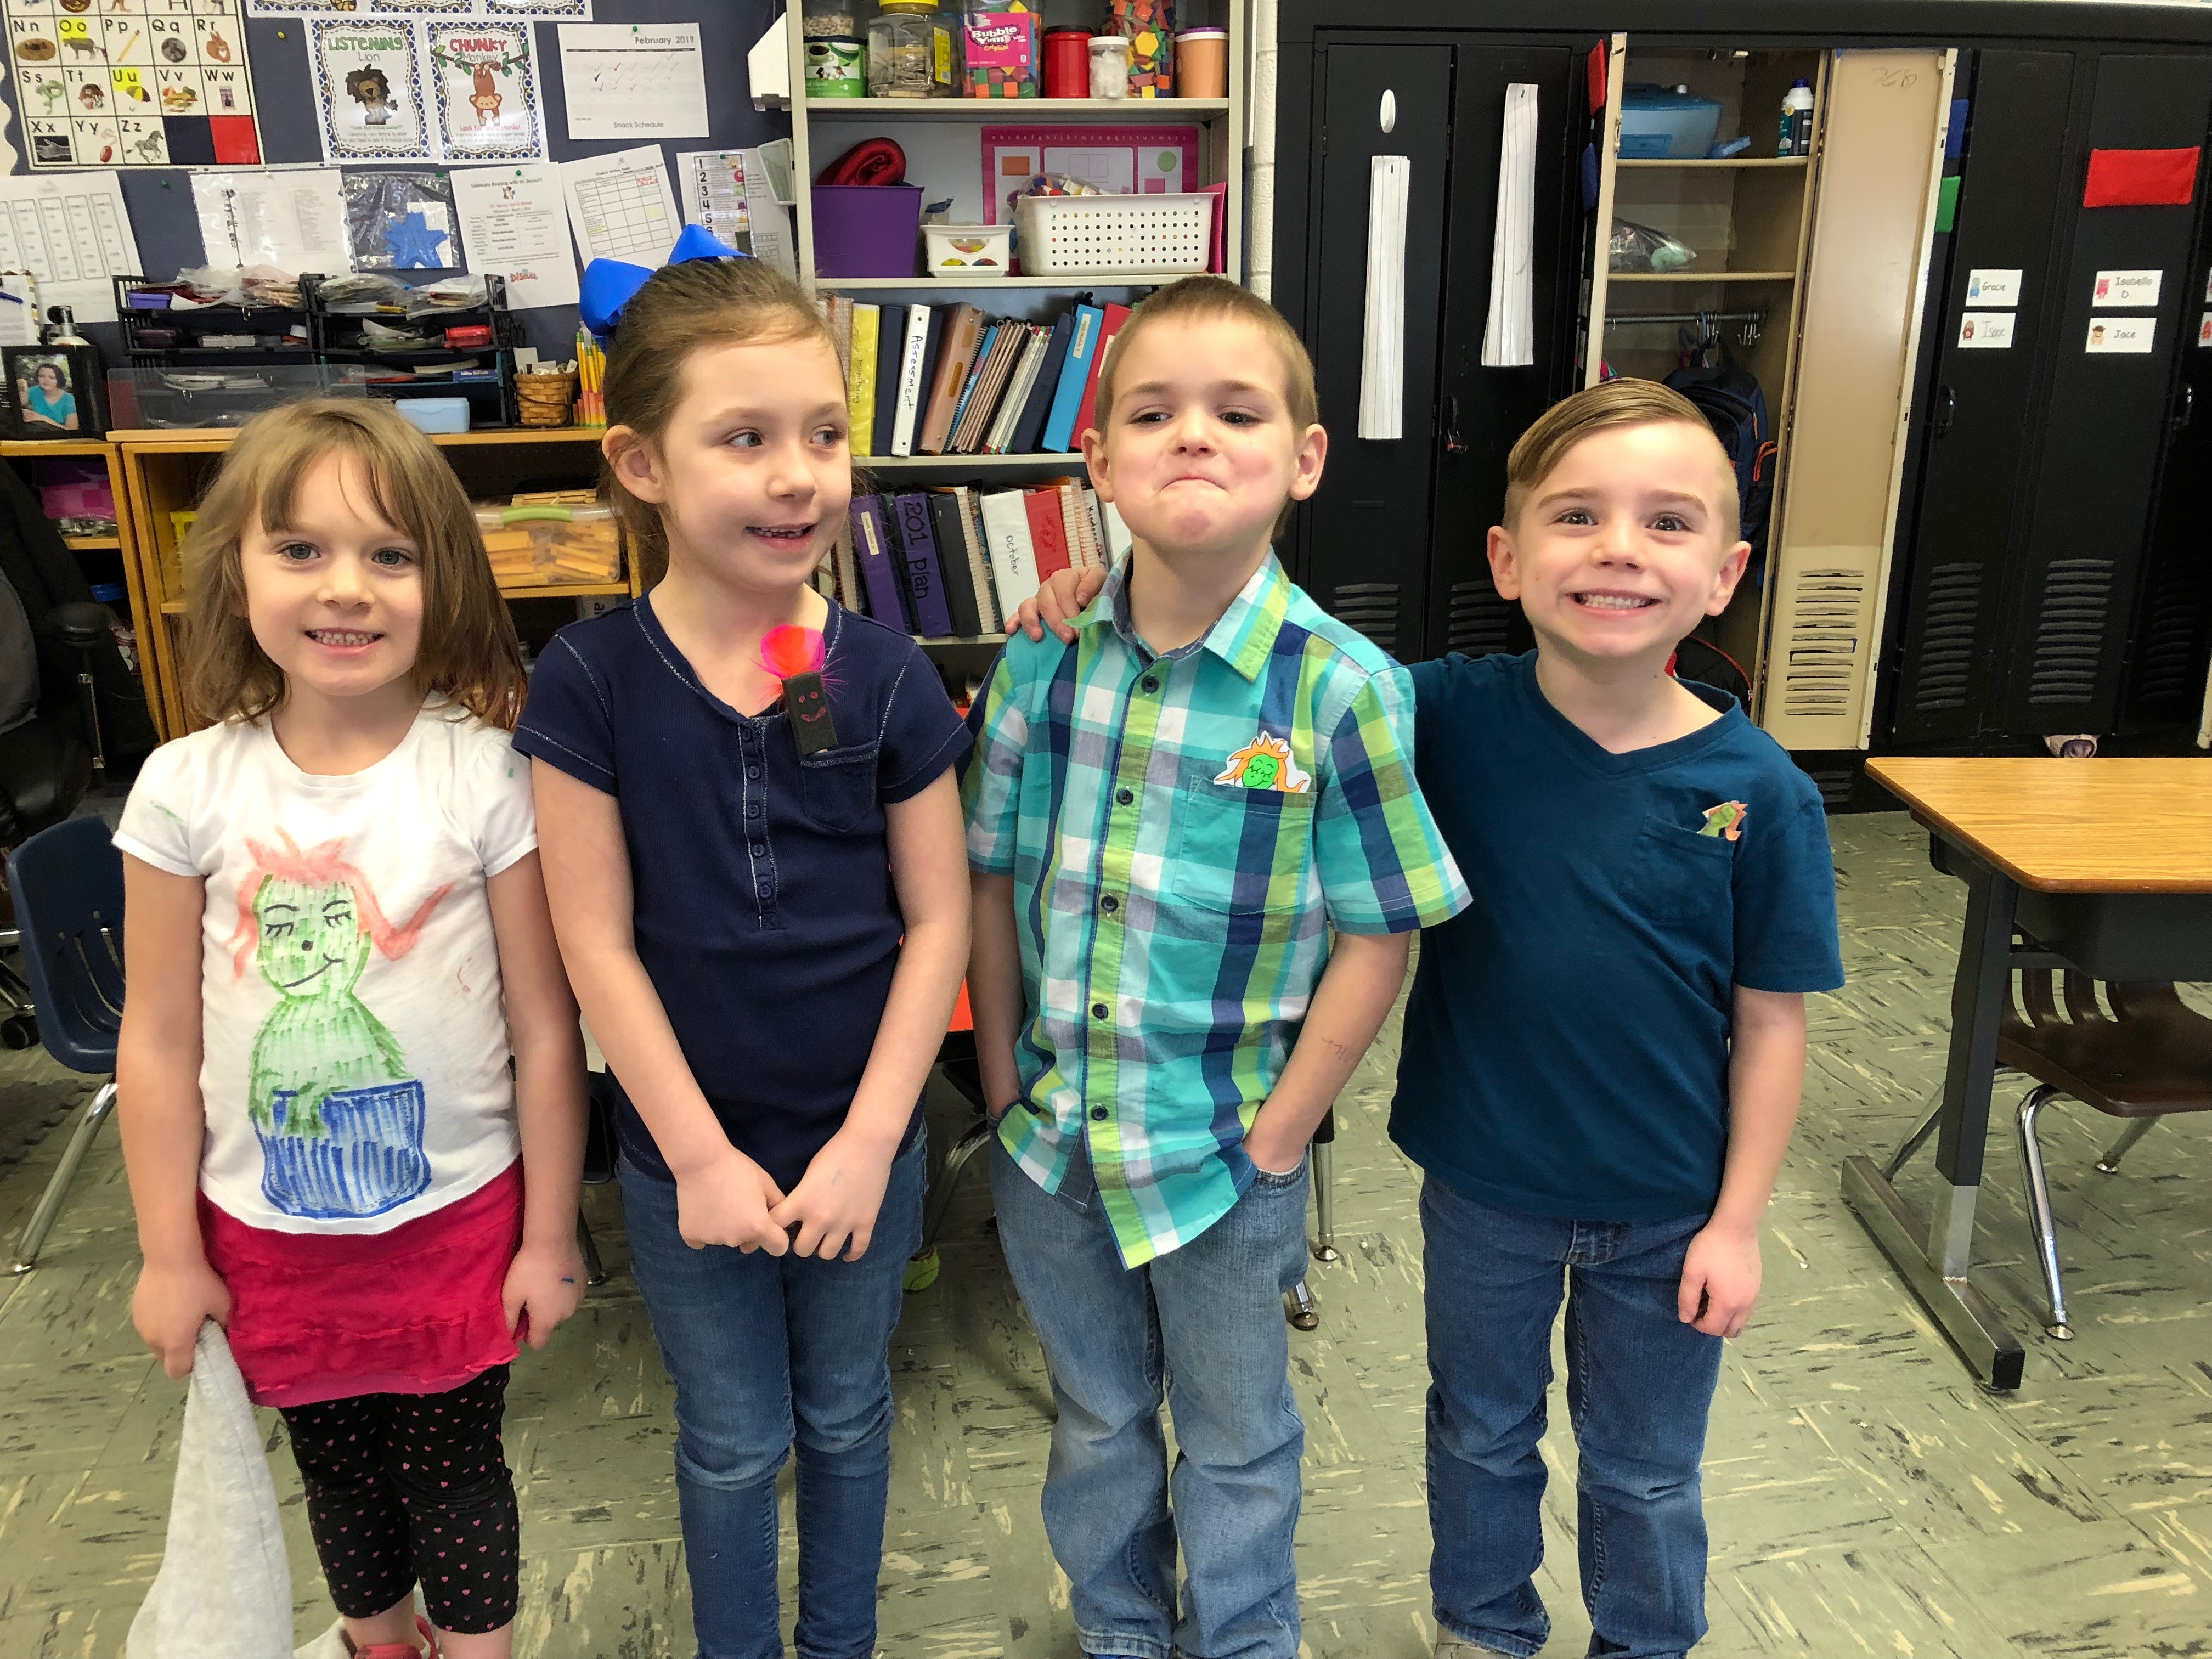 (L-R) Olivia Branscum, Paisley Coffey, Bryson Brown, and Zander Webb from Jill Allen's kindergarten class show off their wockets in their pockets